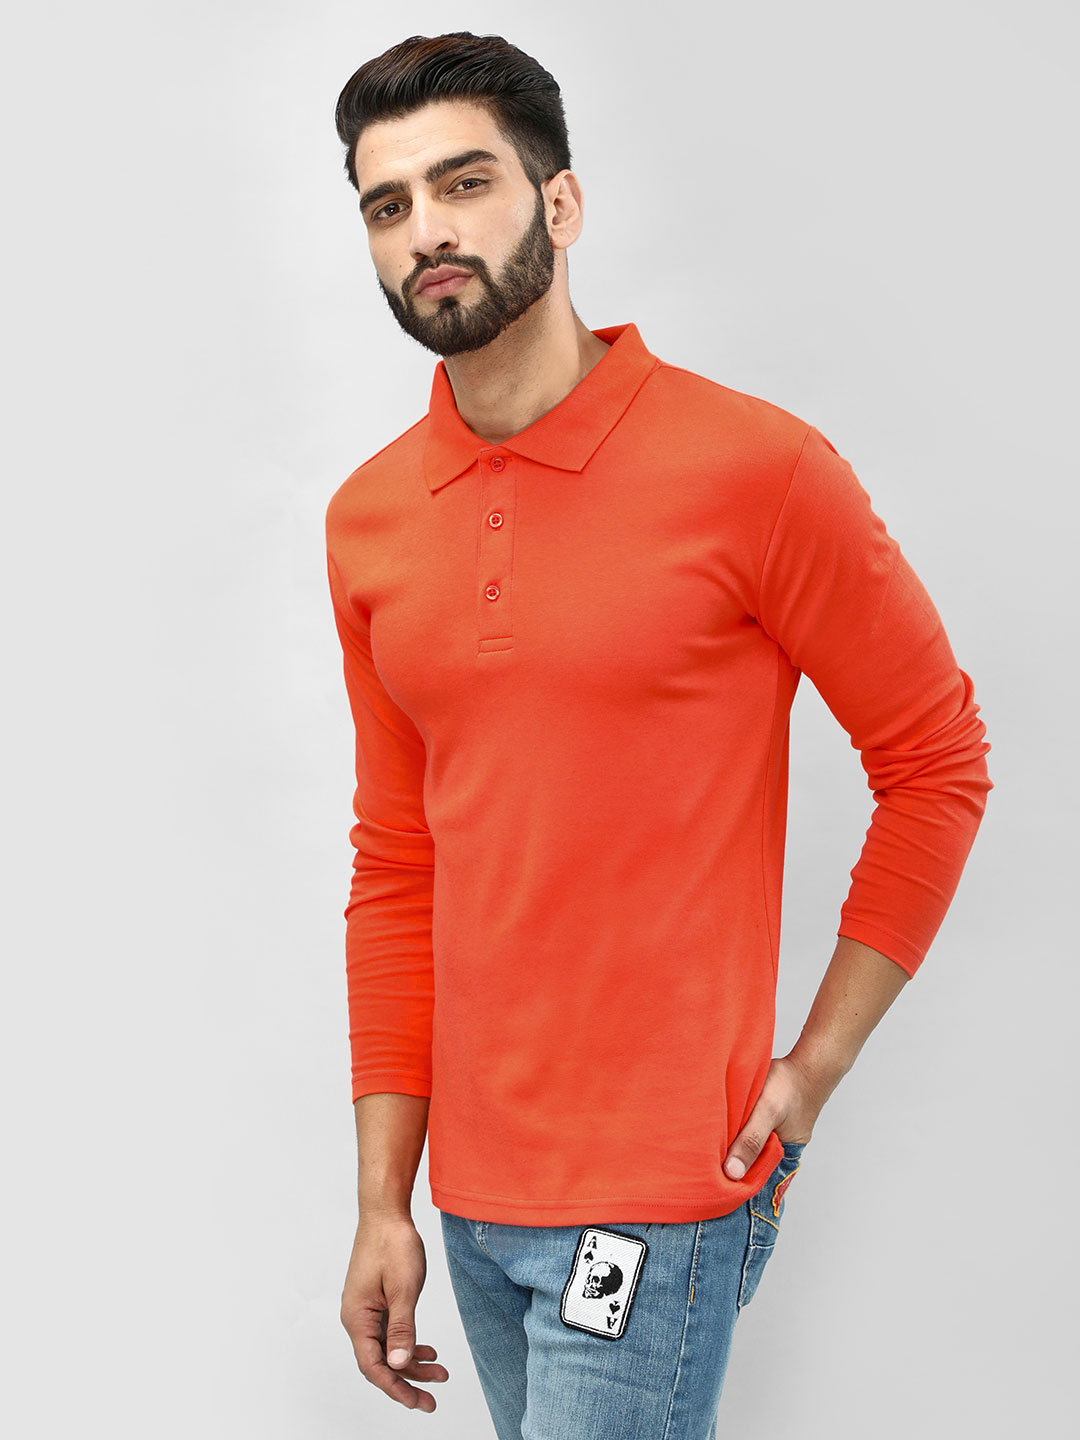 Blue Saint Orange Long Sleeve Polo Shirt 1